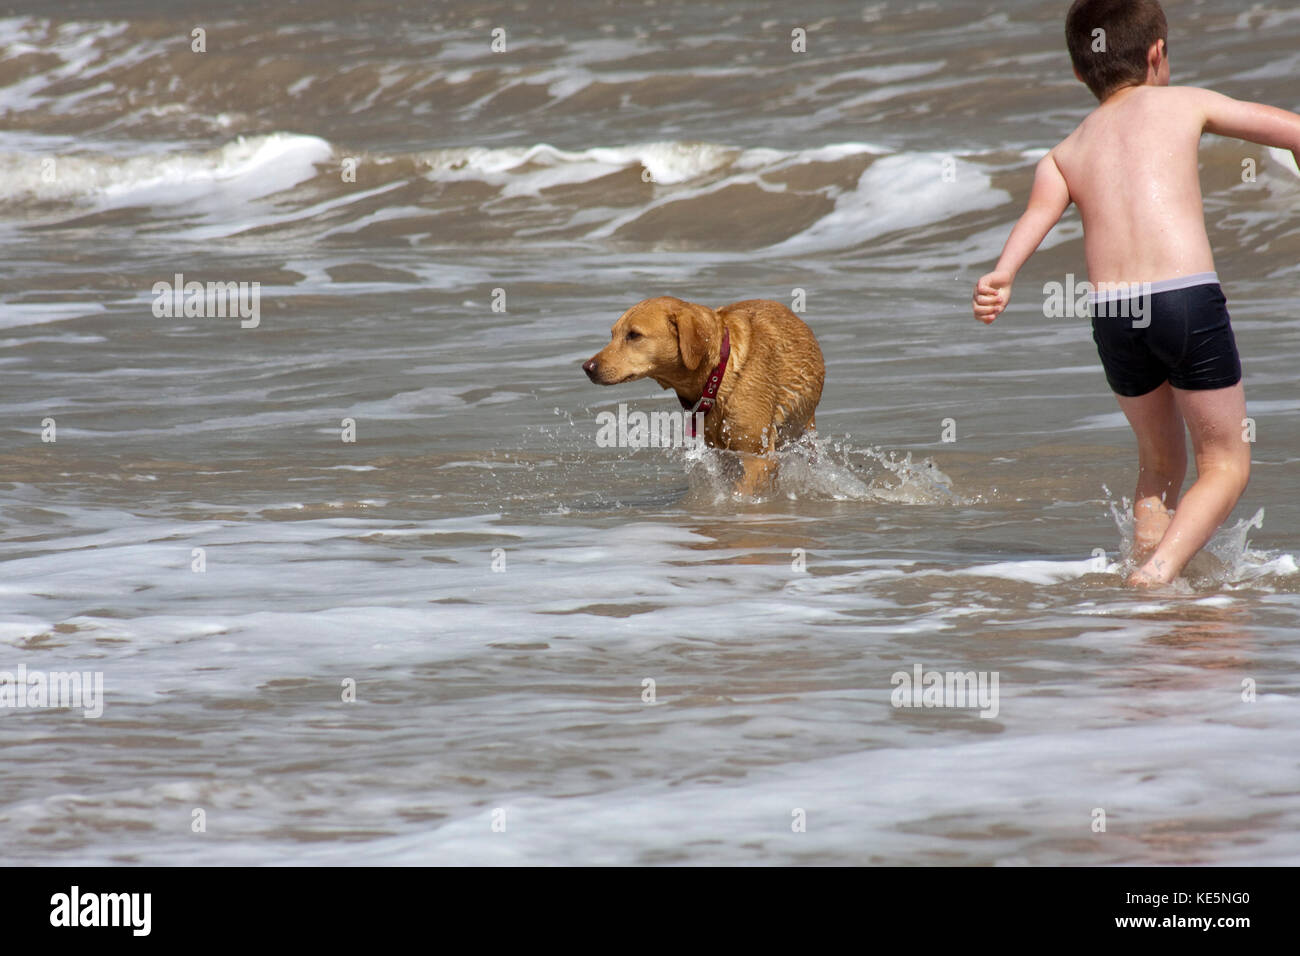 Small boy in swimming trunks and dog playing in the sea - Stock Image